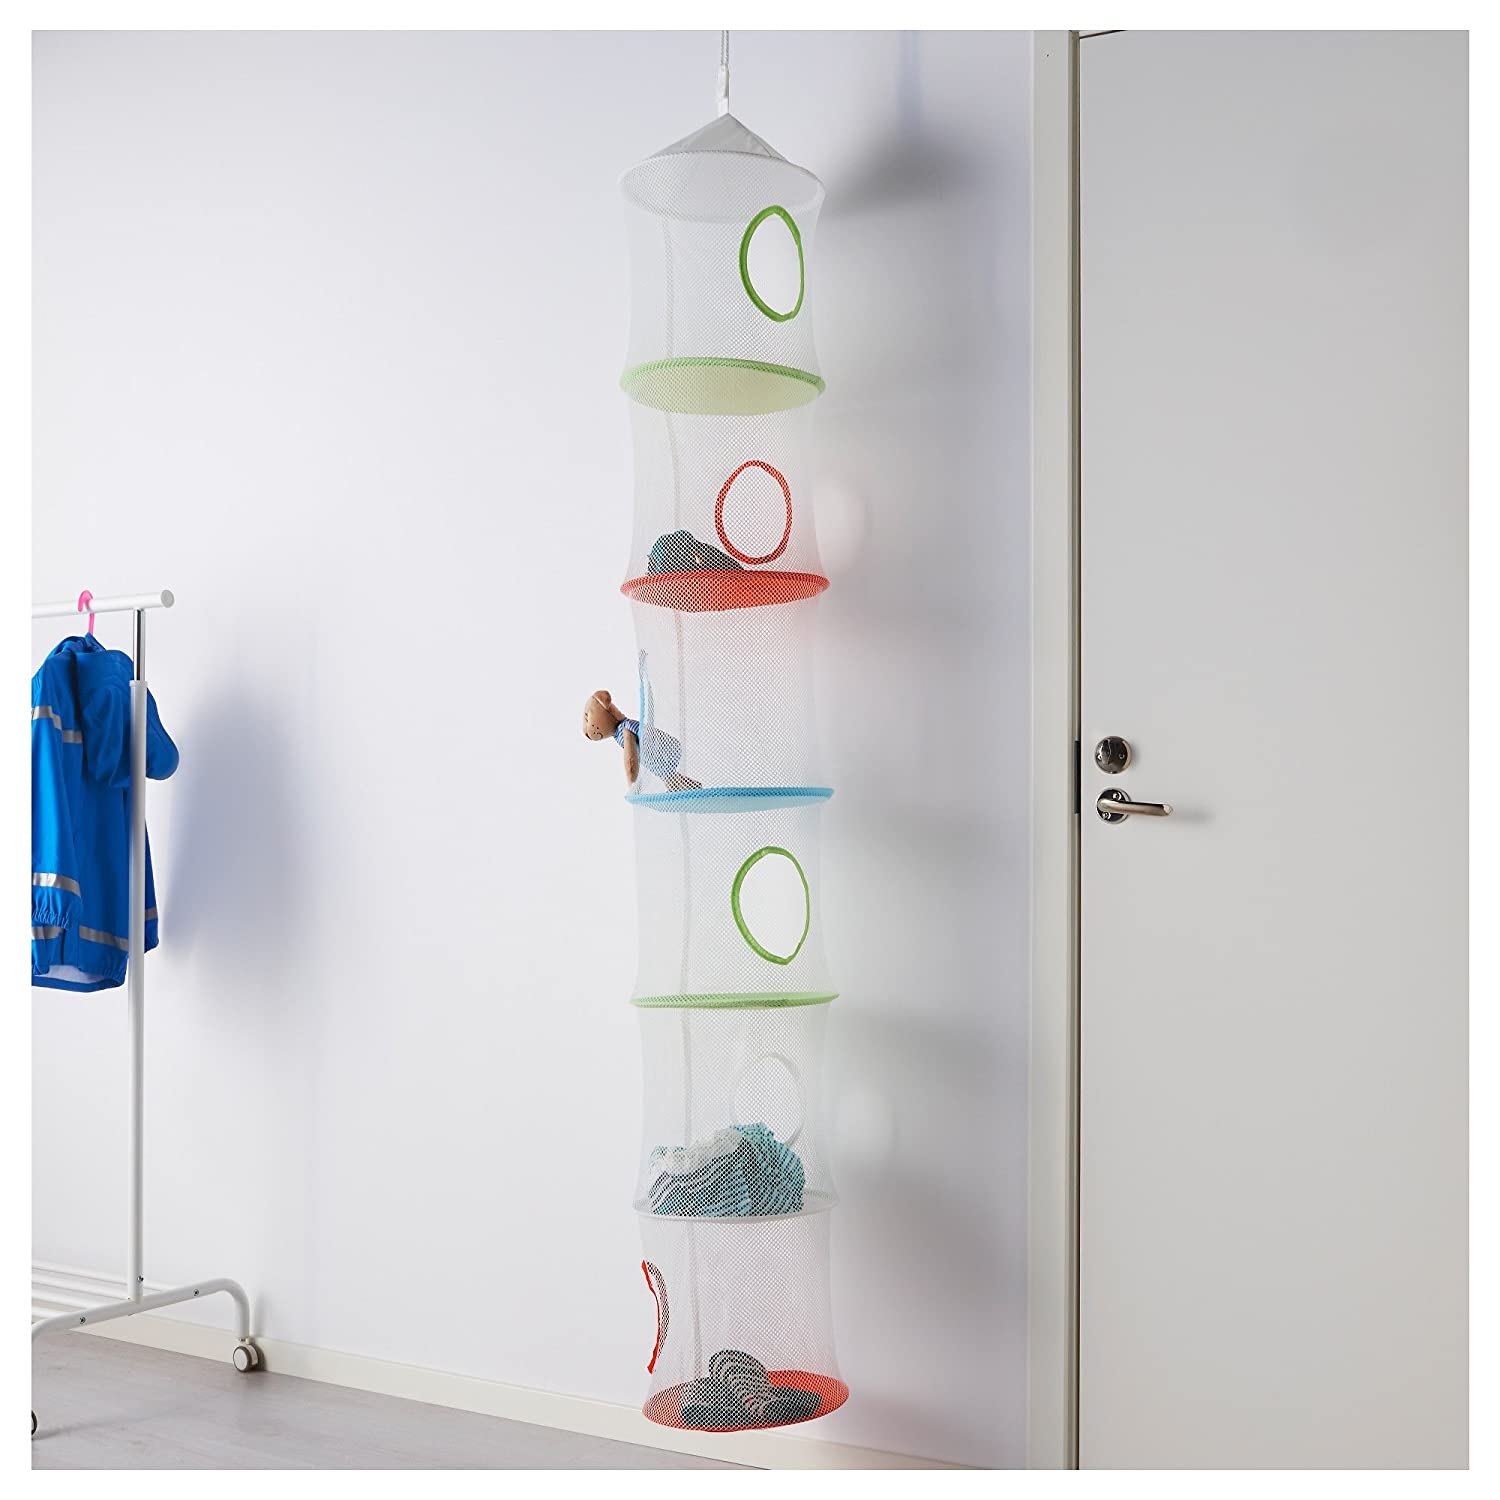 ikea ikea ps fangst hanging storage w multicolour amazoncouk kitchen u home with hanging stuffed animal organizer. & Hanging Stuffed Animal Organizer. Image Is Loading With Hanging ...